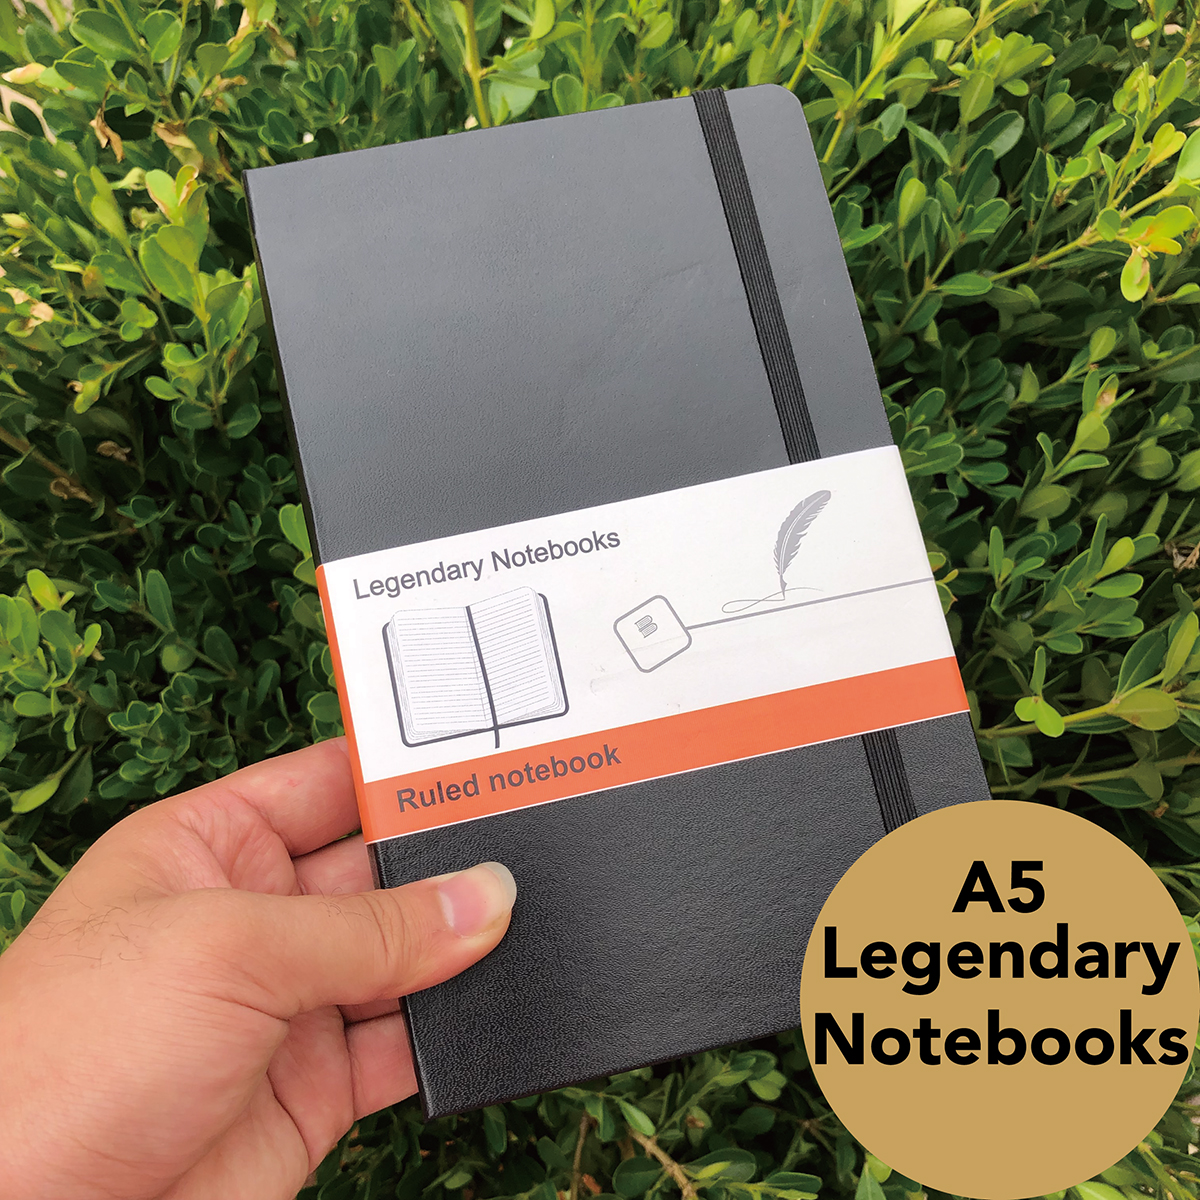 LEGENDARY NOTEBOOK HARDCOVER BULLET JOURNAL ART SKETCHBOOK DOTTED GRID PAGES/RULED/SQUARE/PLAIN 100GSM